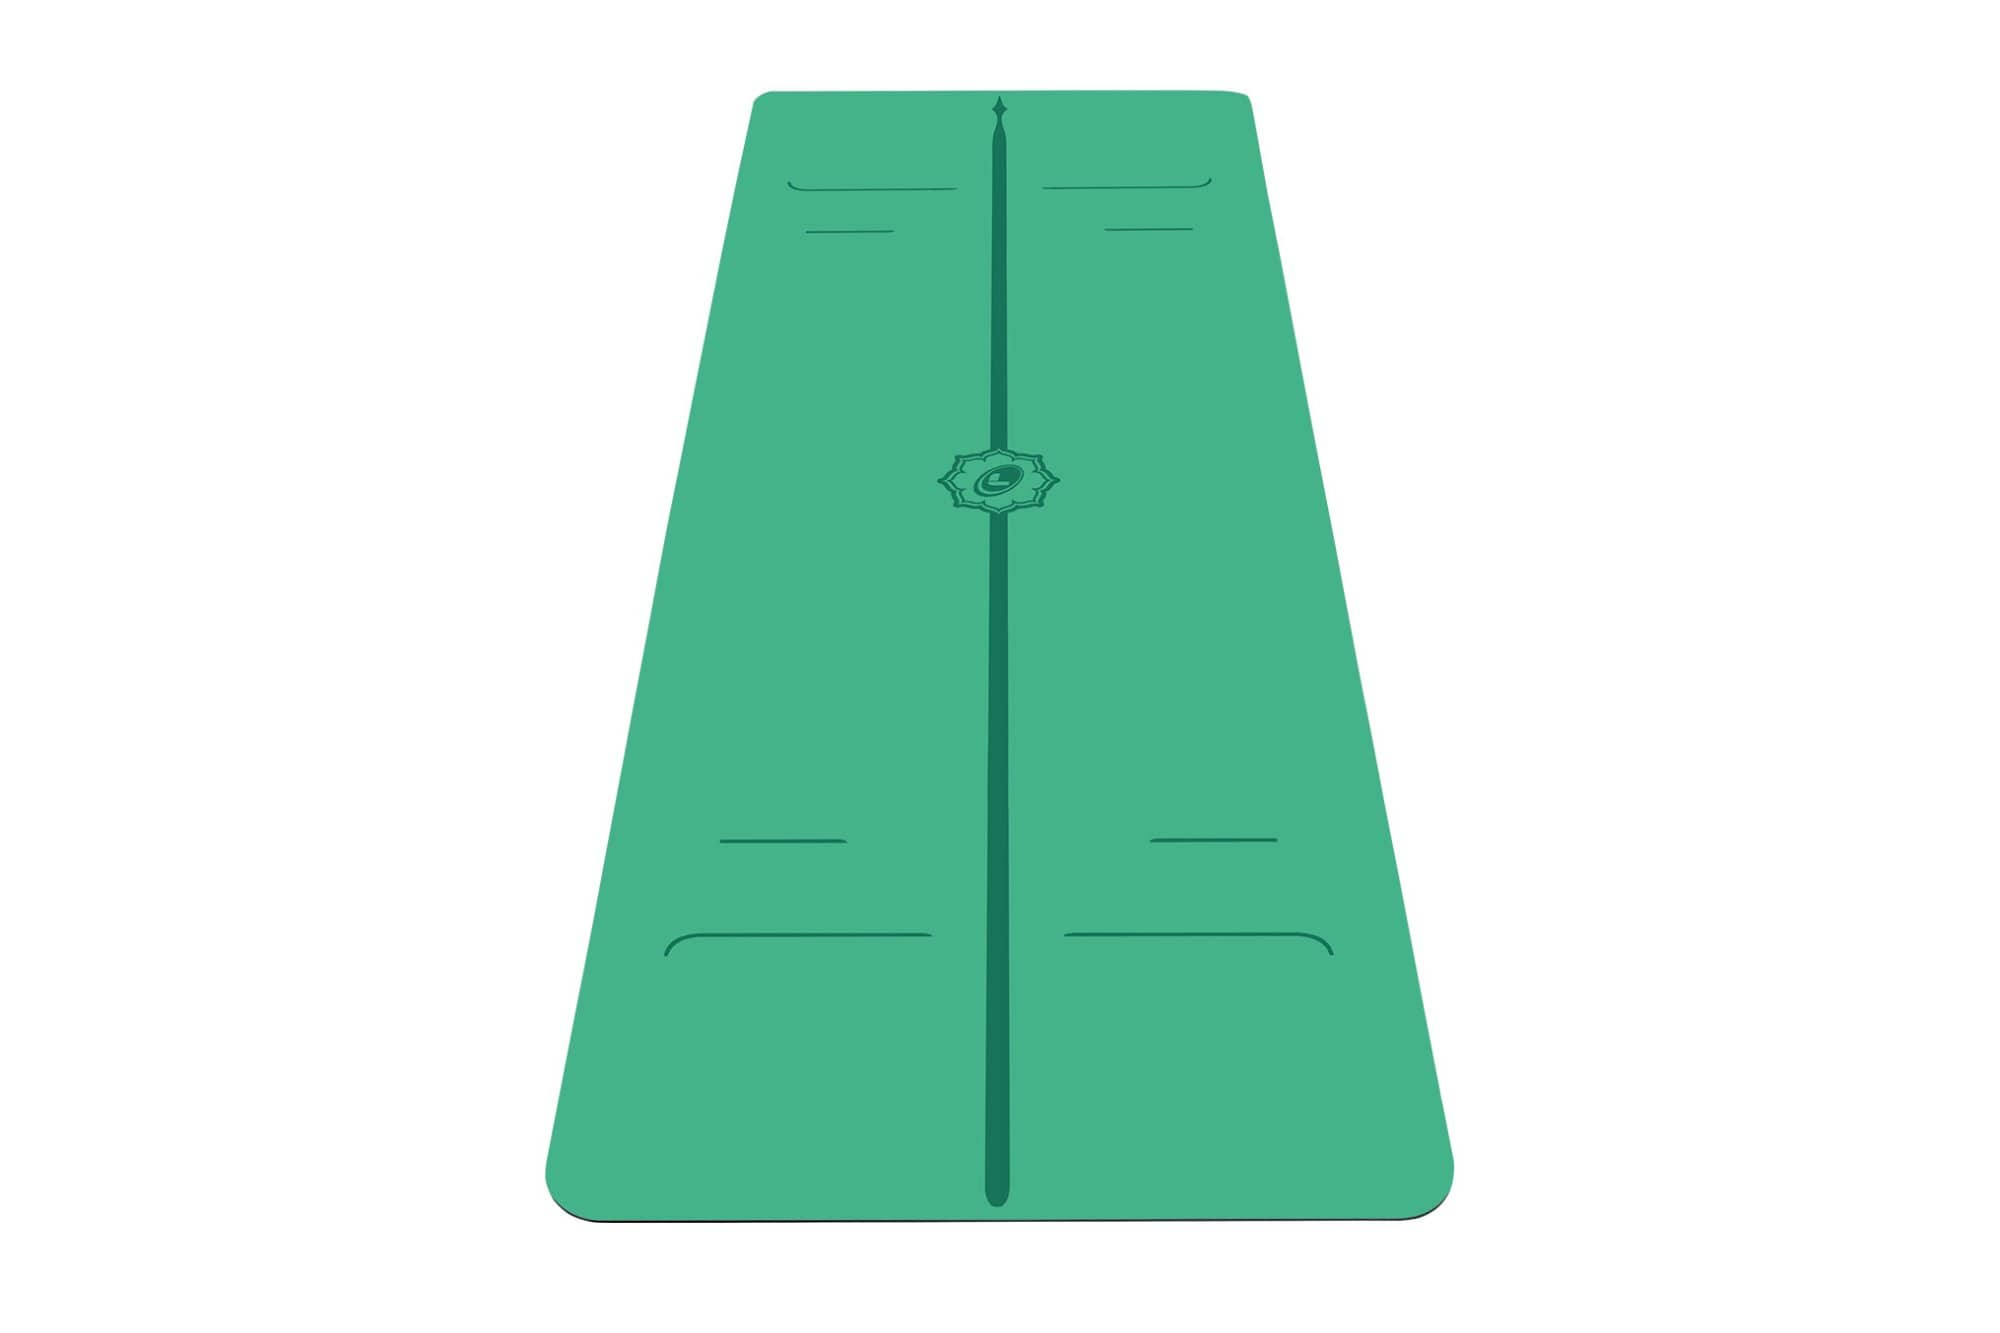 Portrait view of green Evolve Yoga mat from Liforme